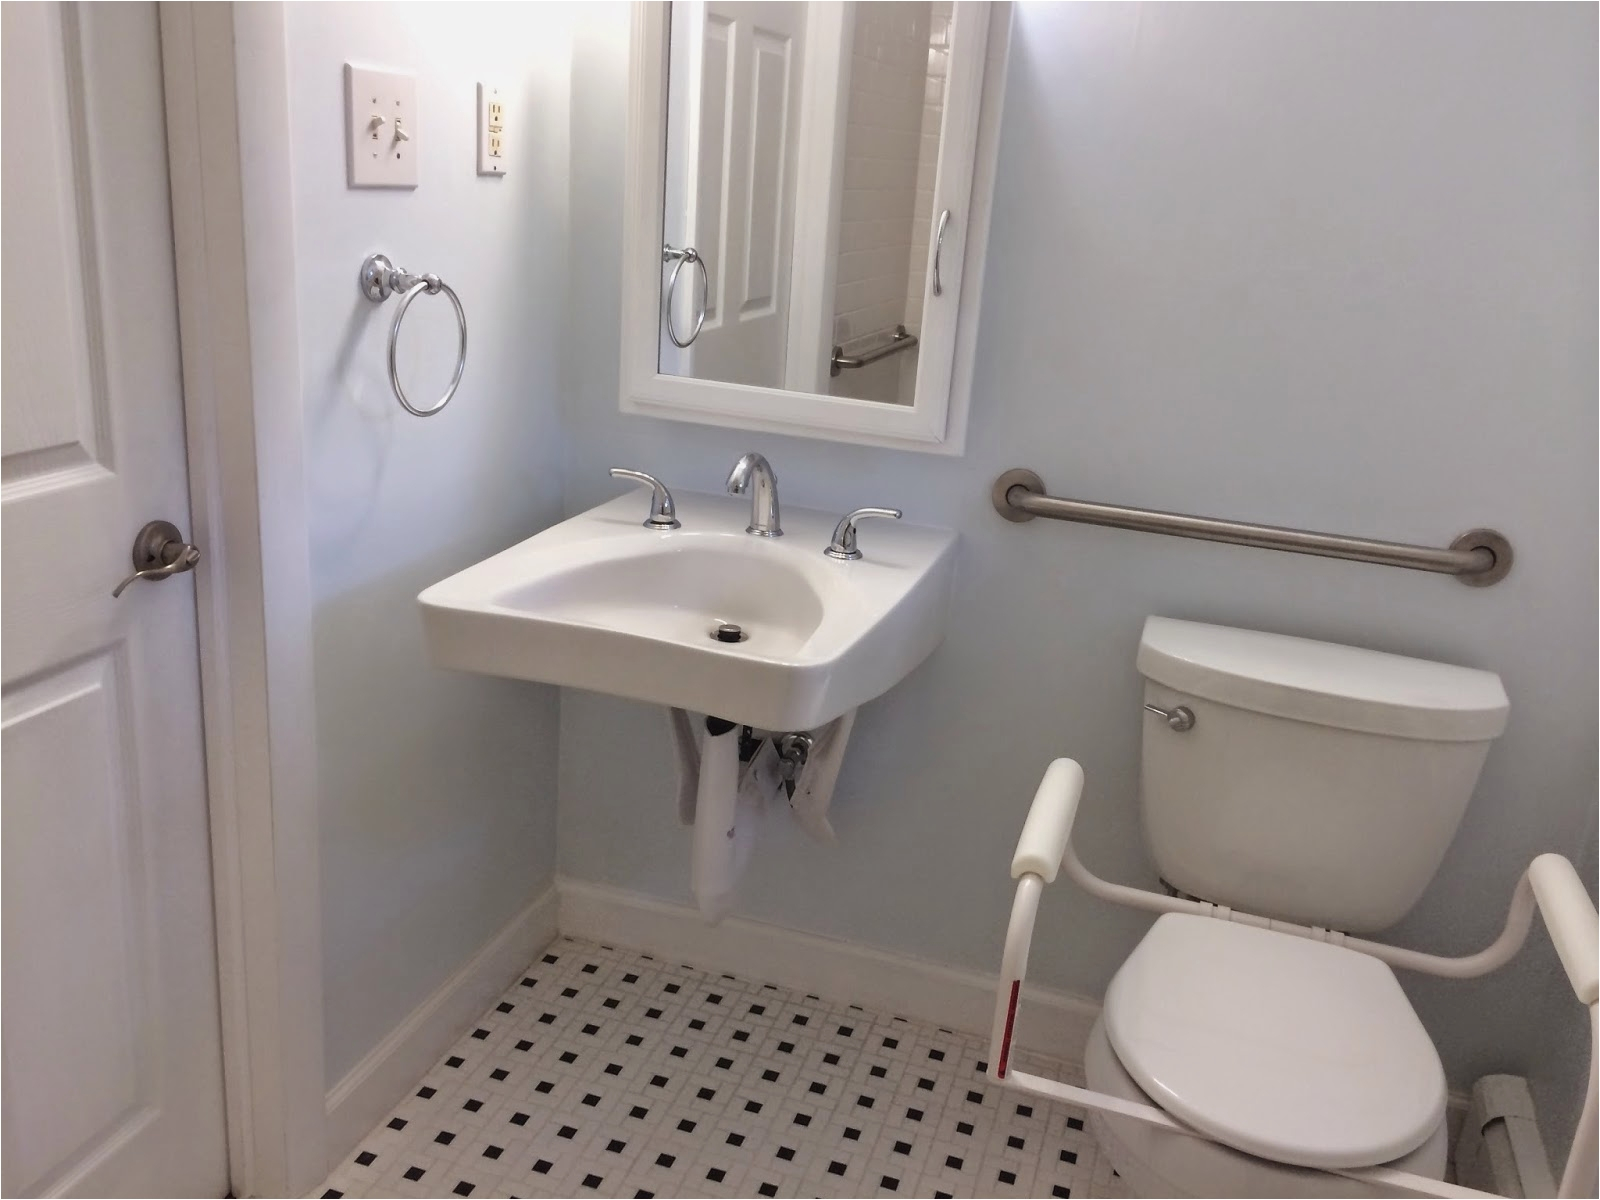 Cool Ada Compliant Bathroom Sinks And Vanities Lovely Ada Pliant Toilet regarding Awesome Ada Compliant Bathroom Sink